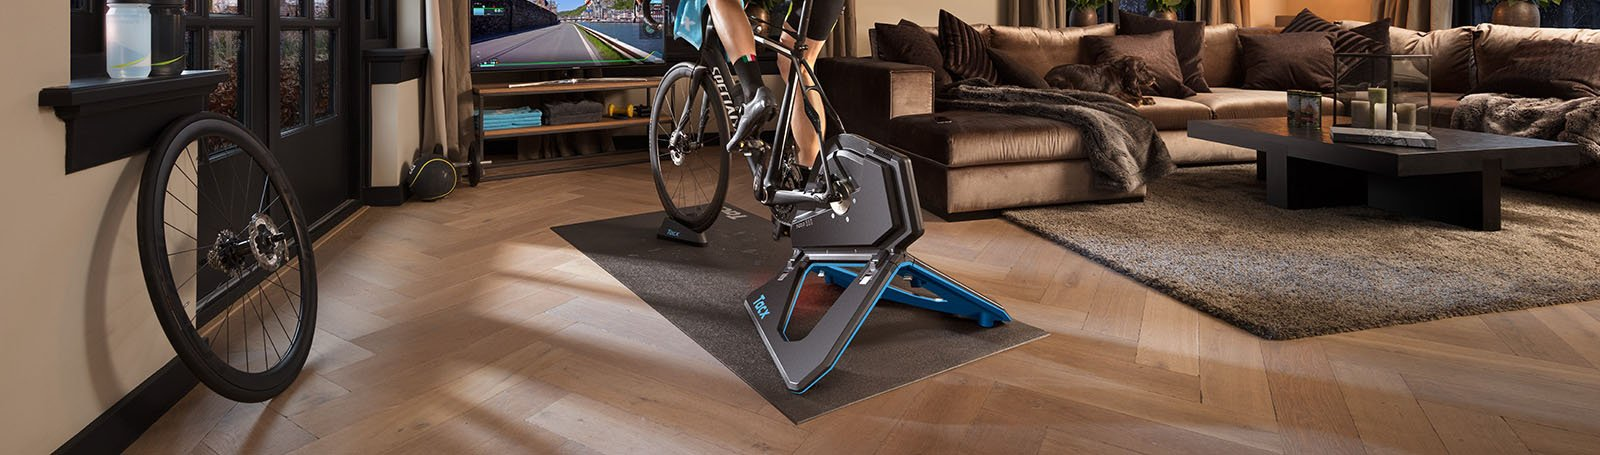 indoor-cycling-image